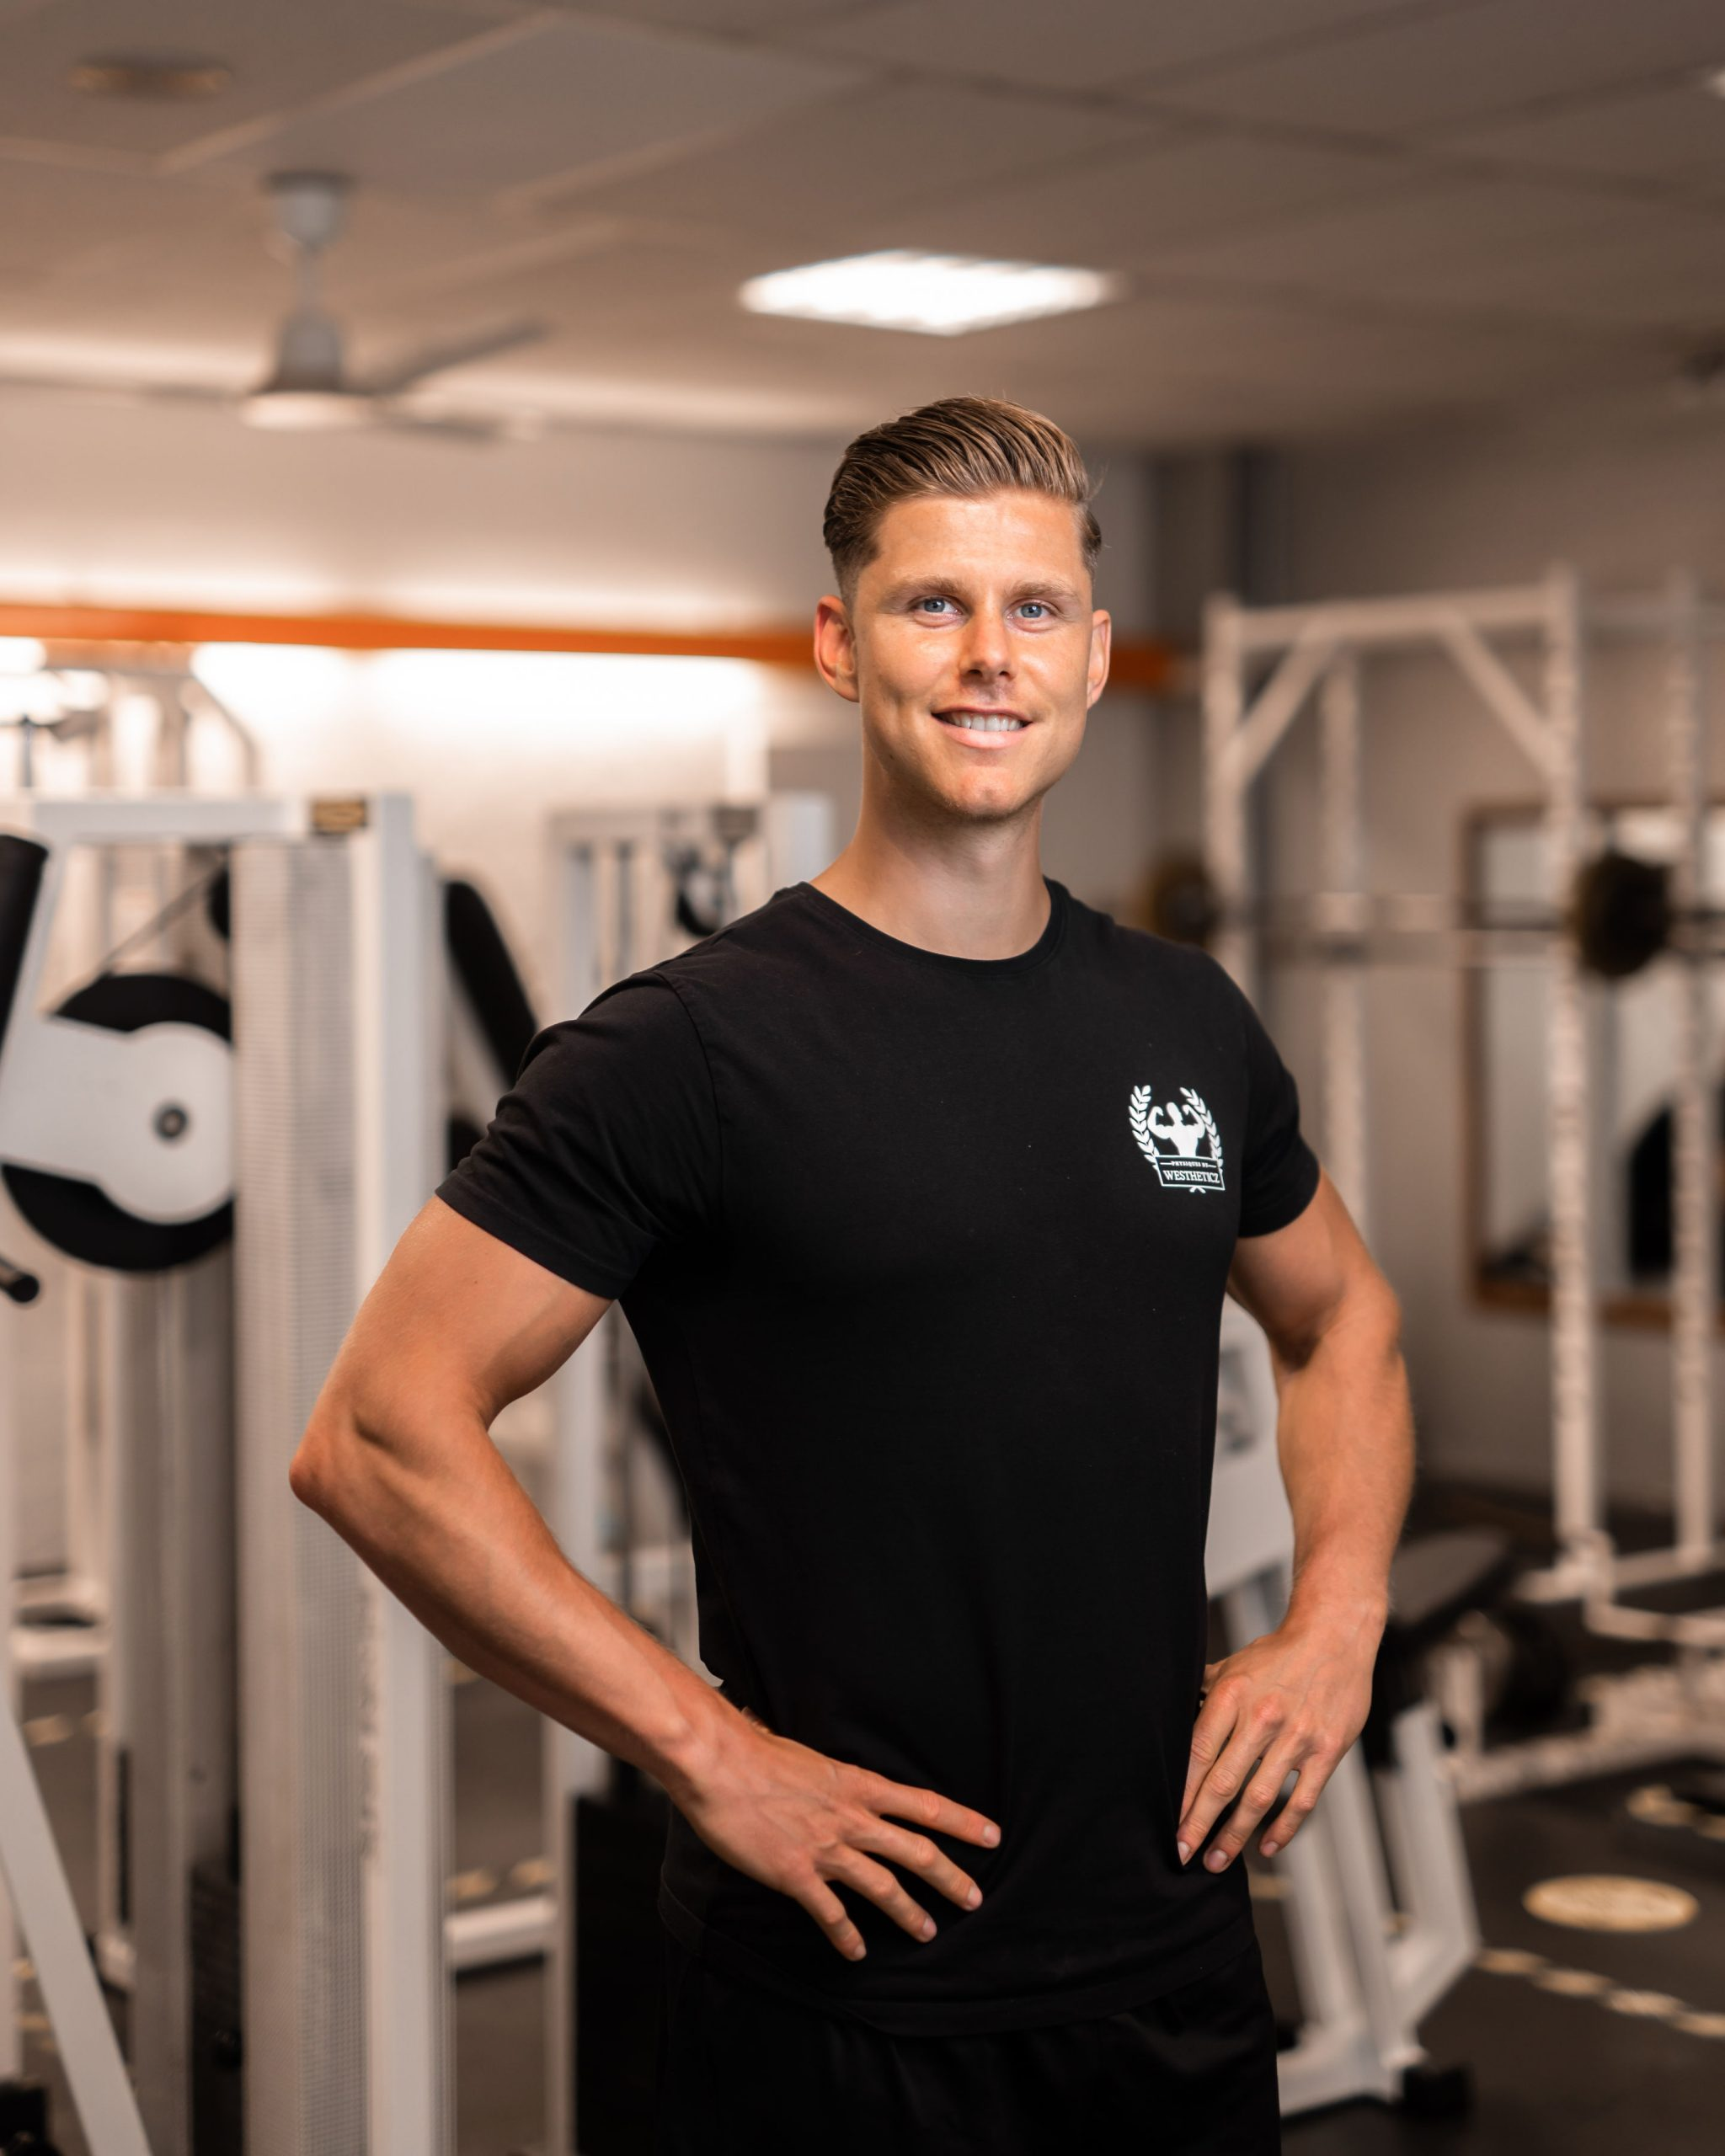 Westheticz Online Personal Training